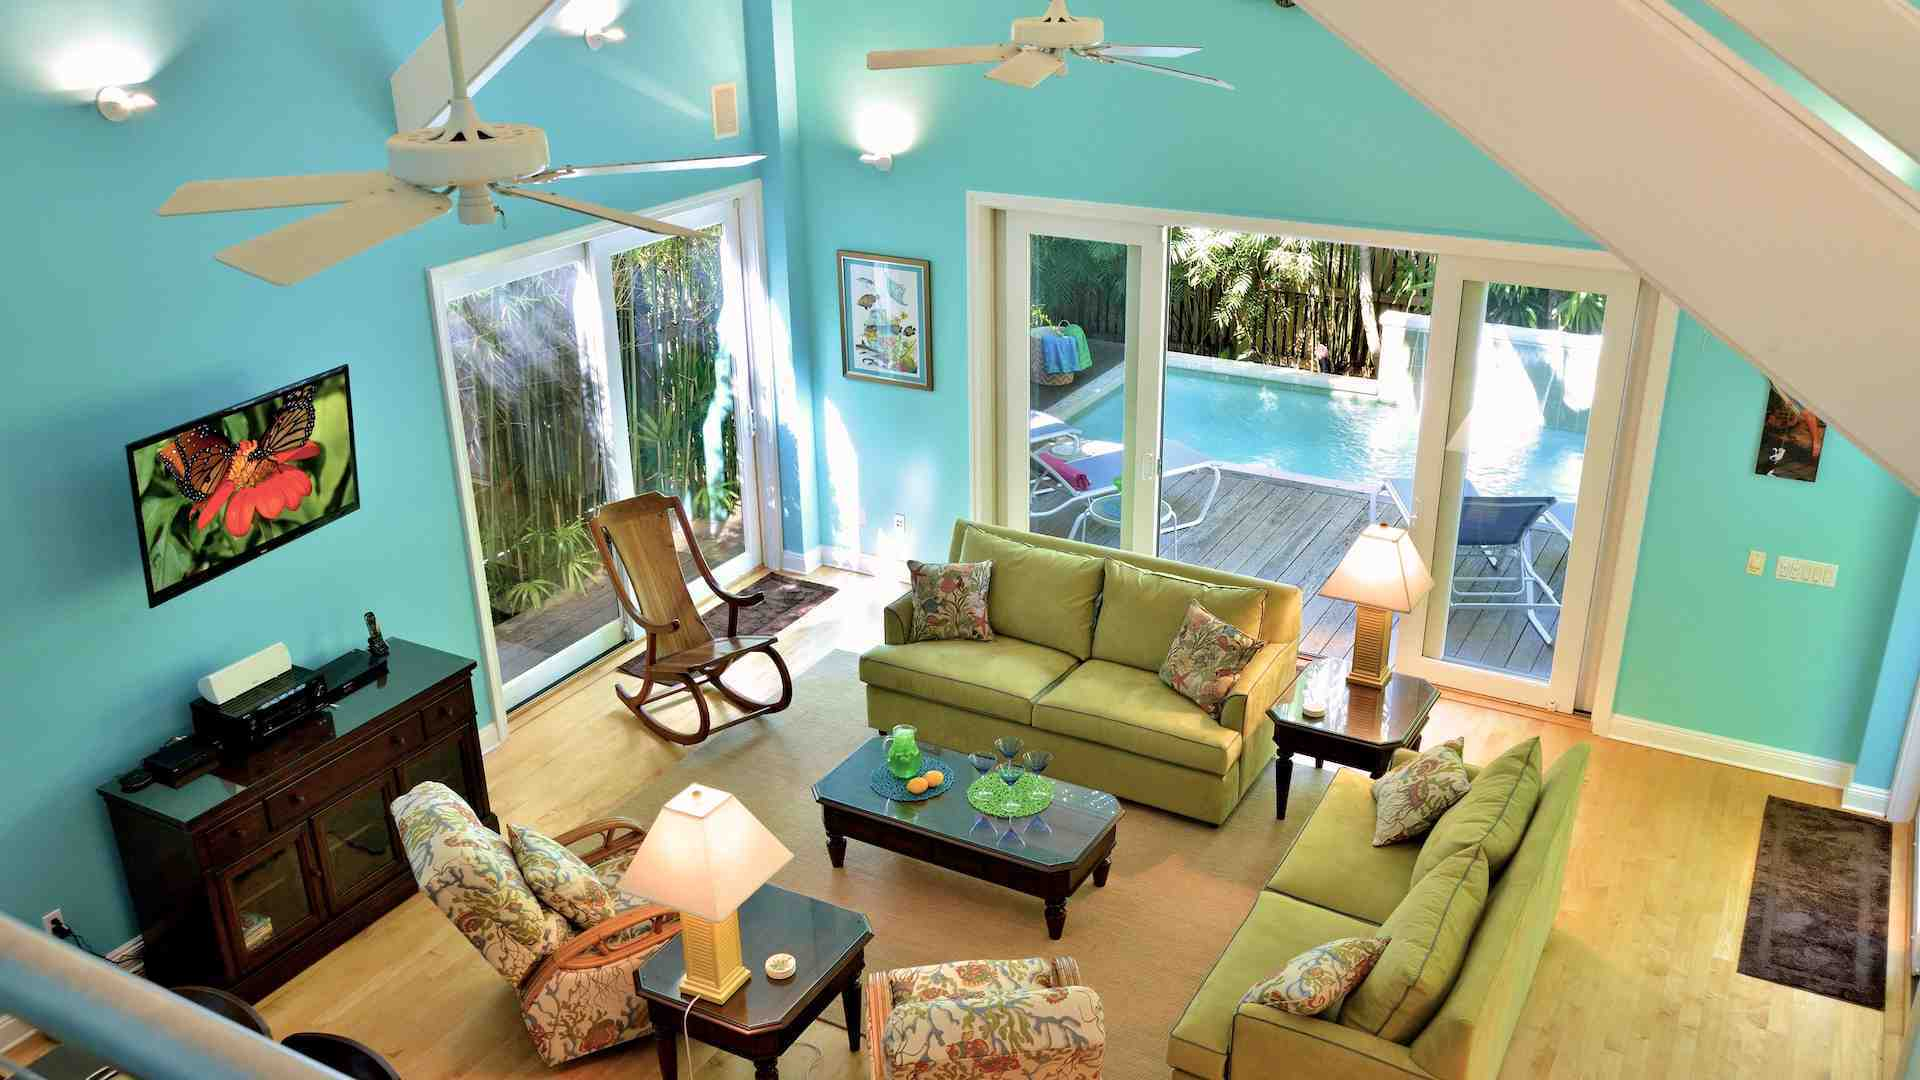 The dramatic 22 foot ceilings provide a wonderful sense of light and airiness...